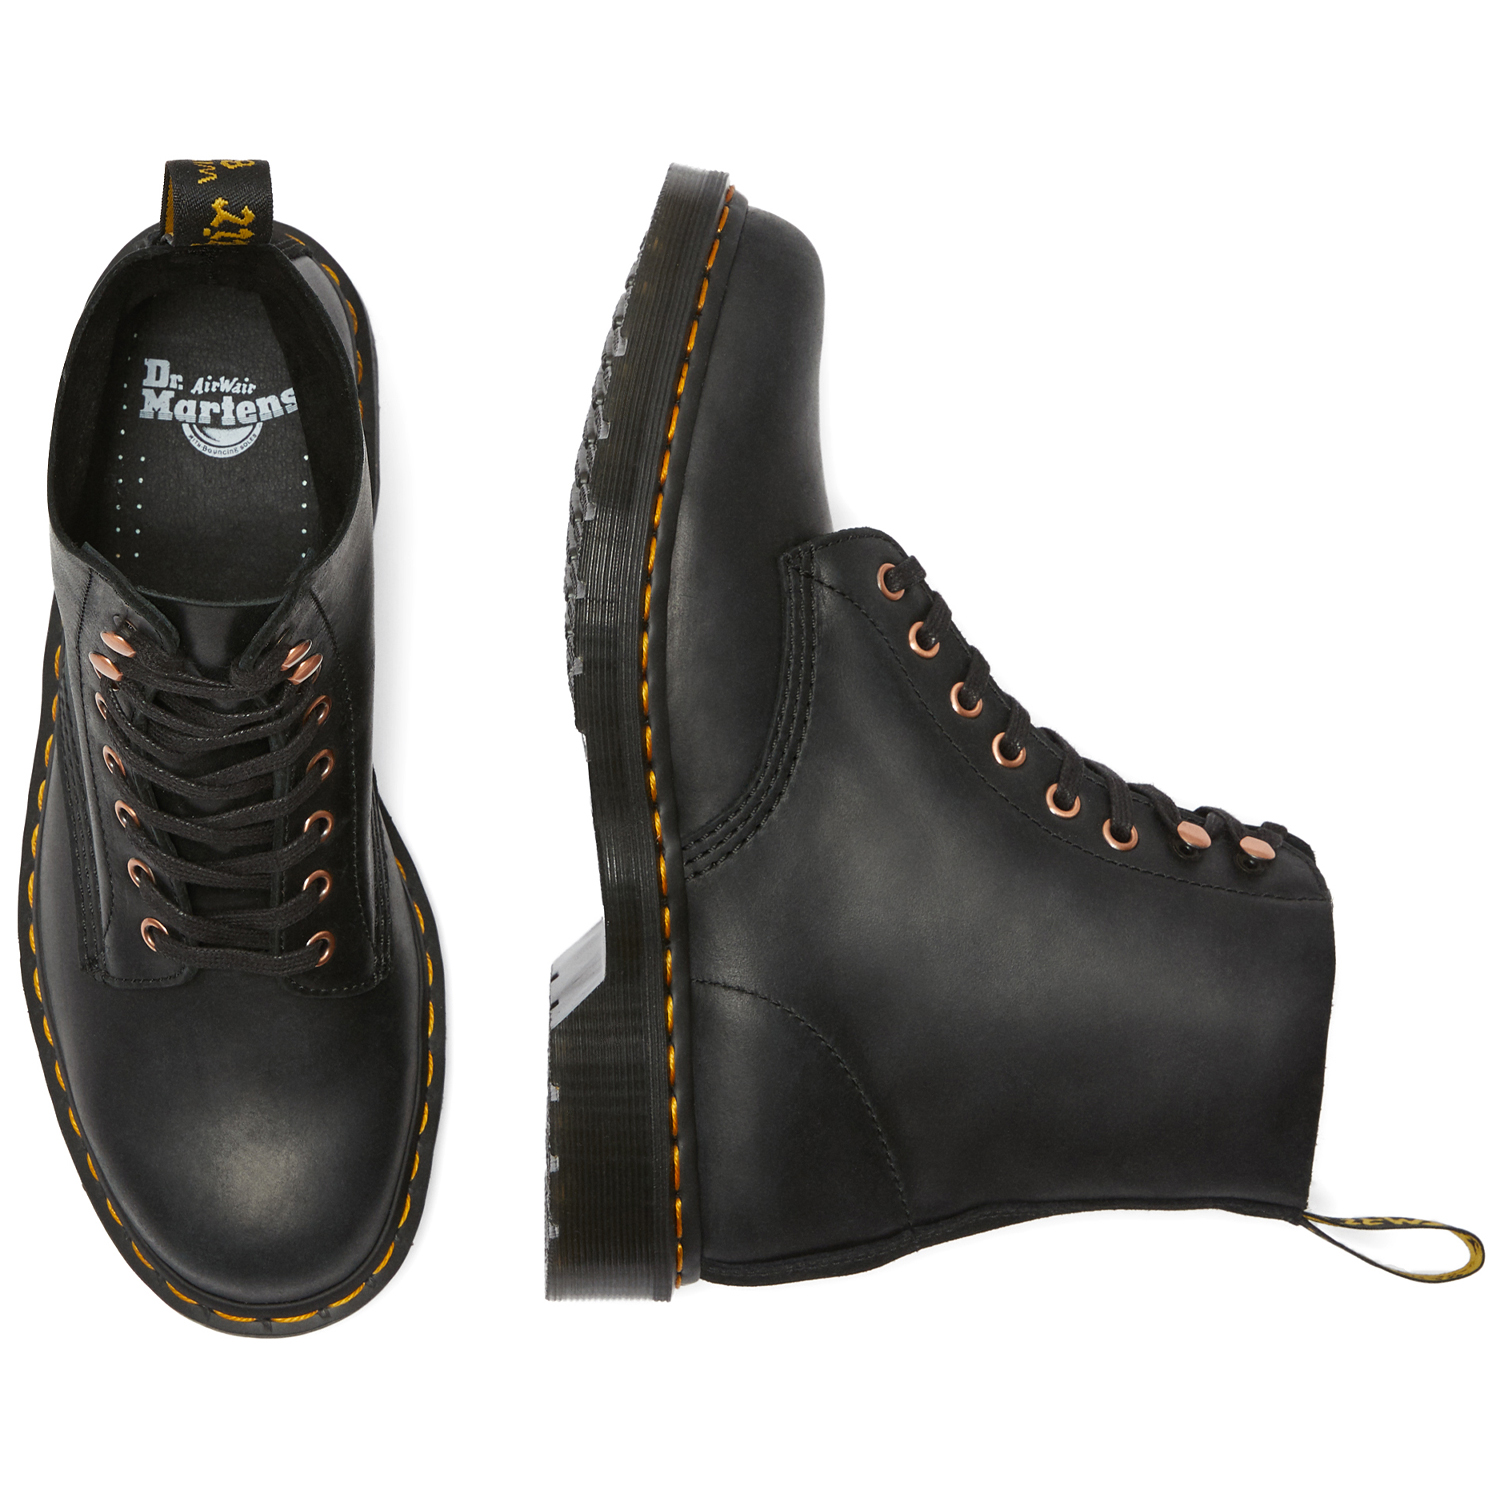 1460 | Old Product | Sito ufficiale Dr. Martens